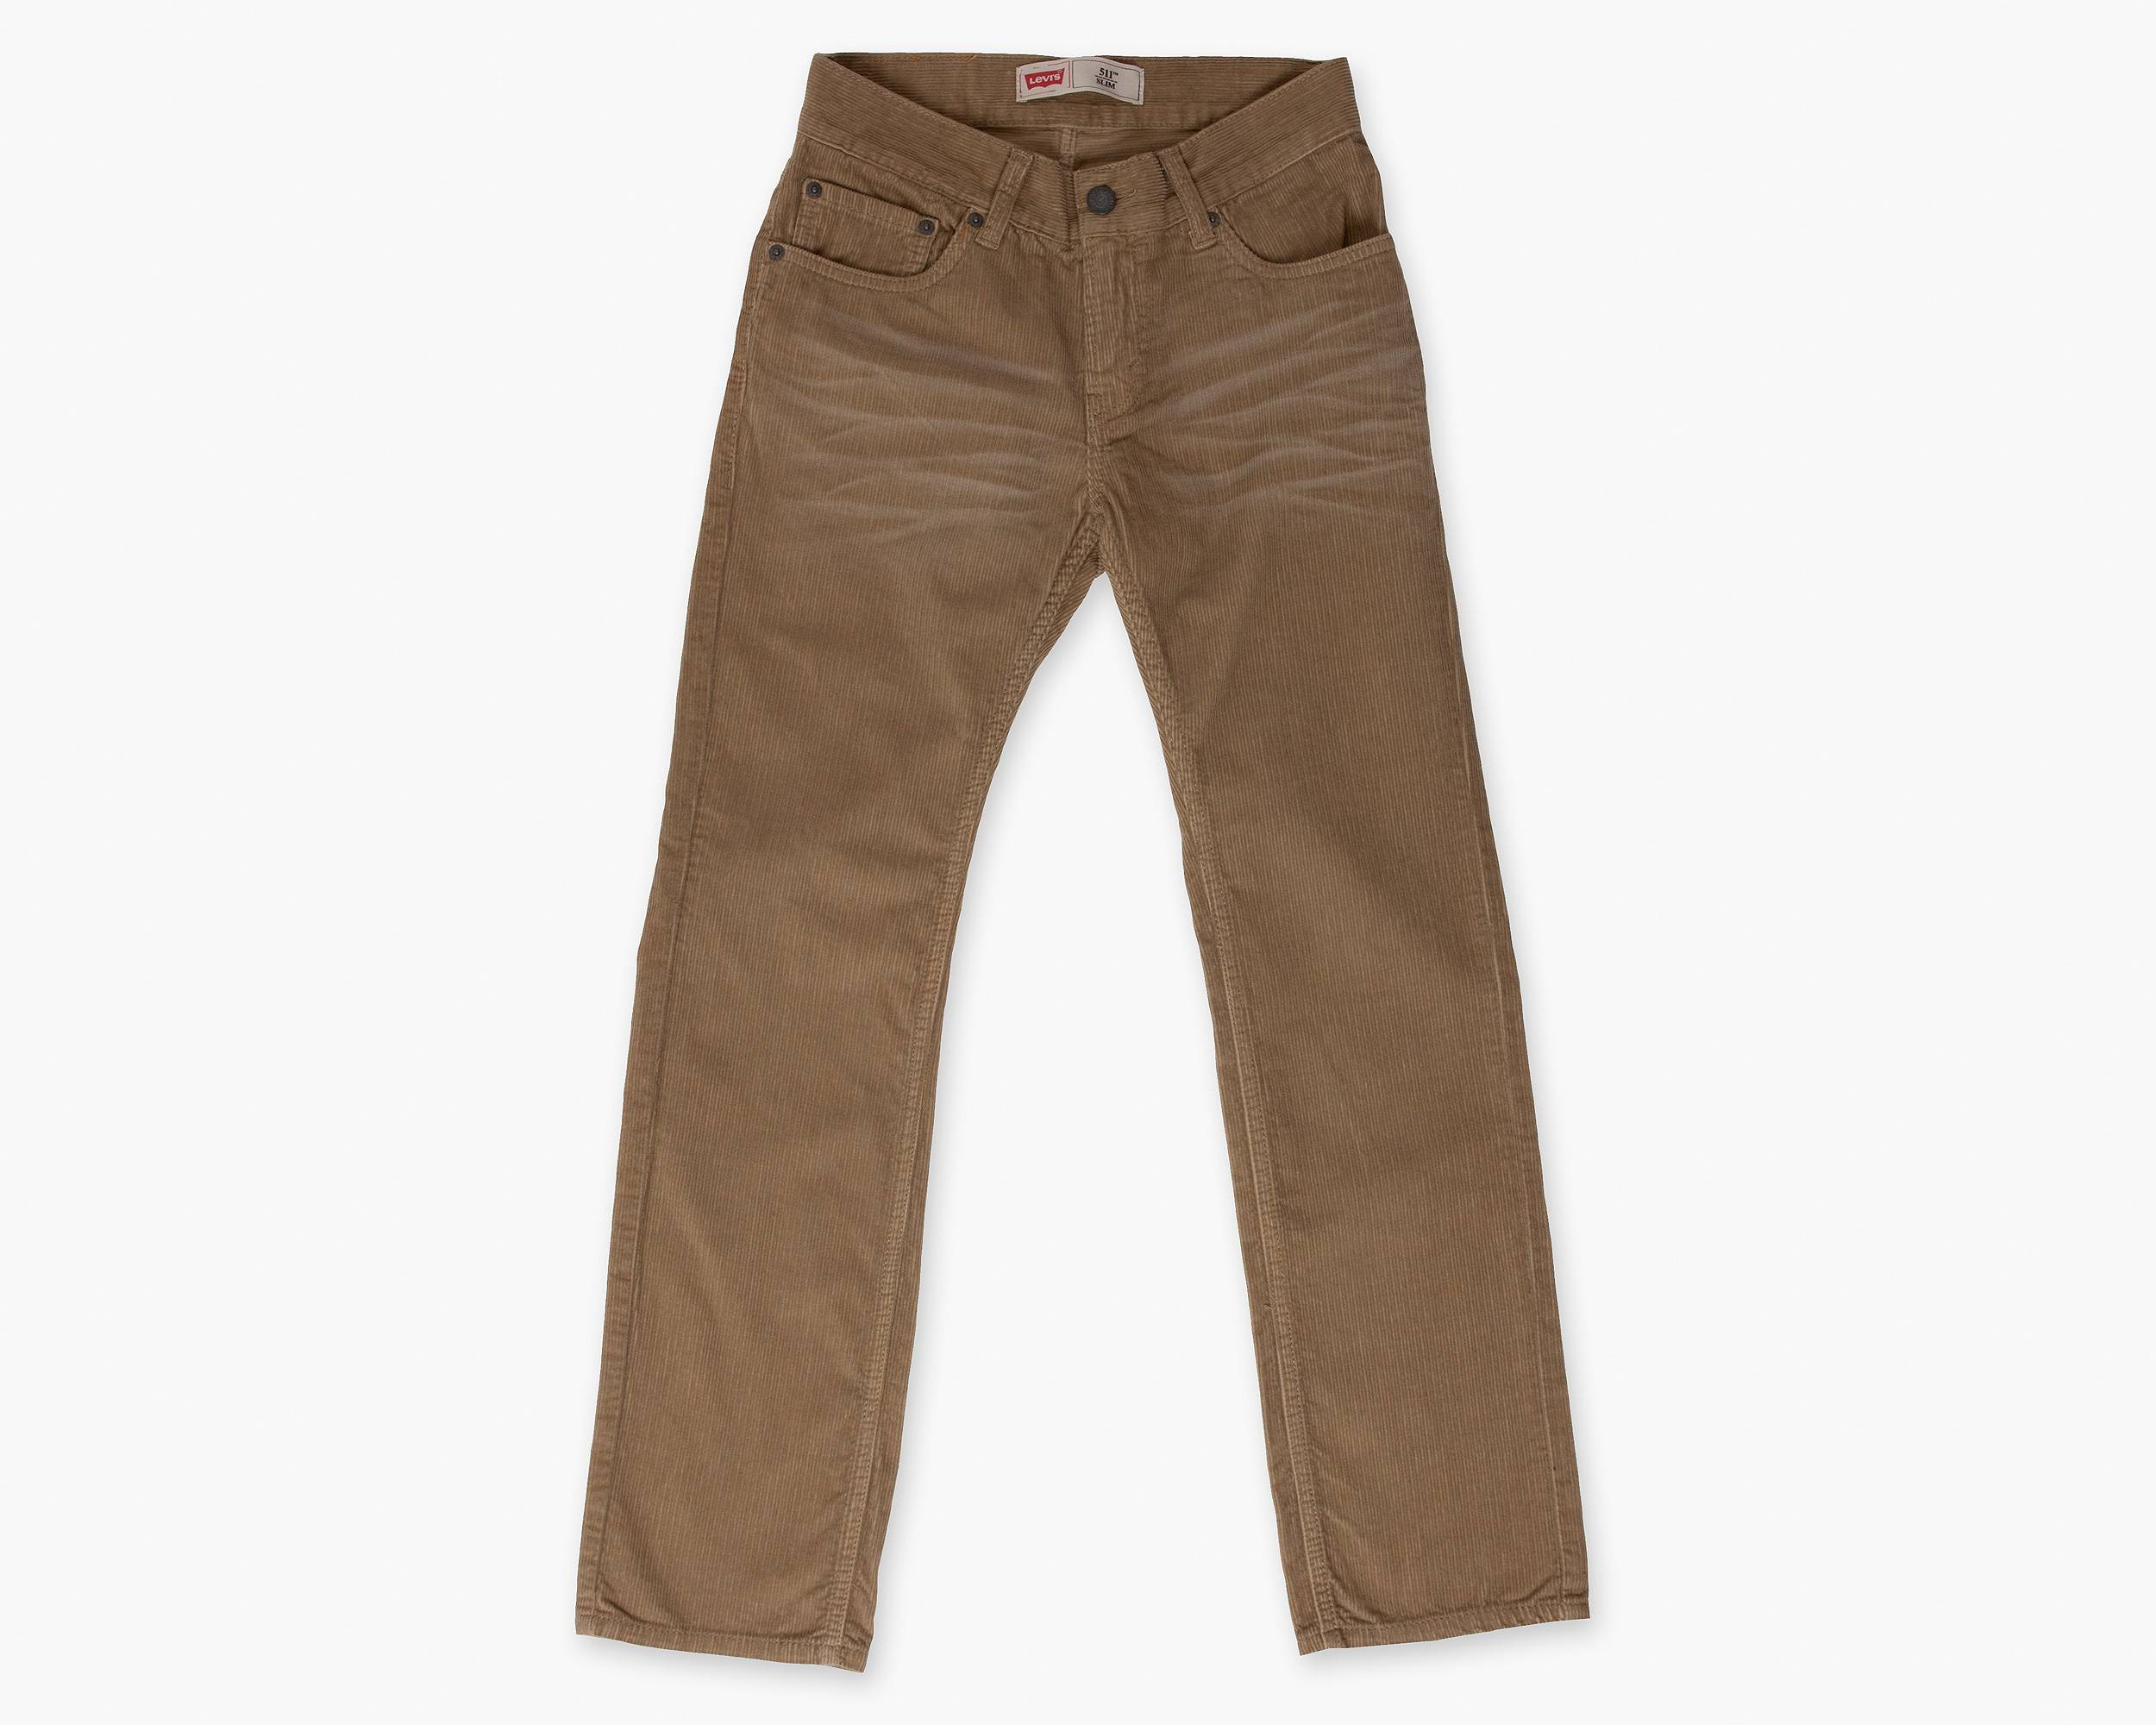 Boys (8-20) 511 Corduroy Pants | Surplus Khaki |Levi's® United ...